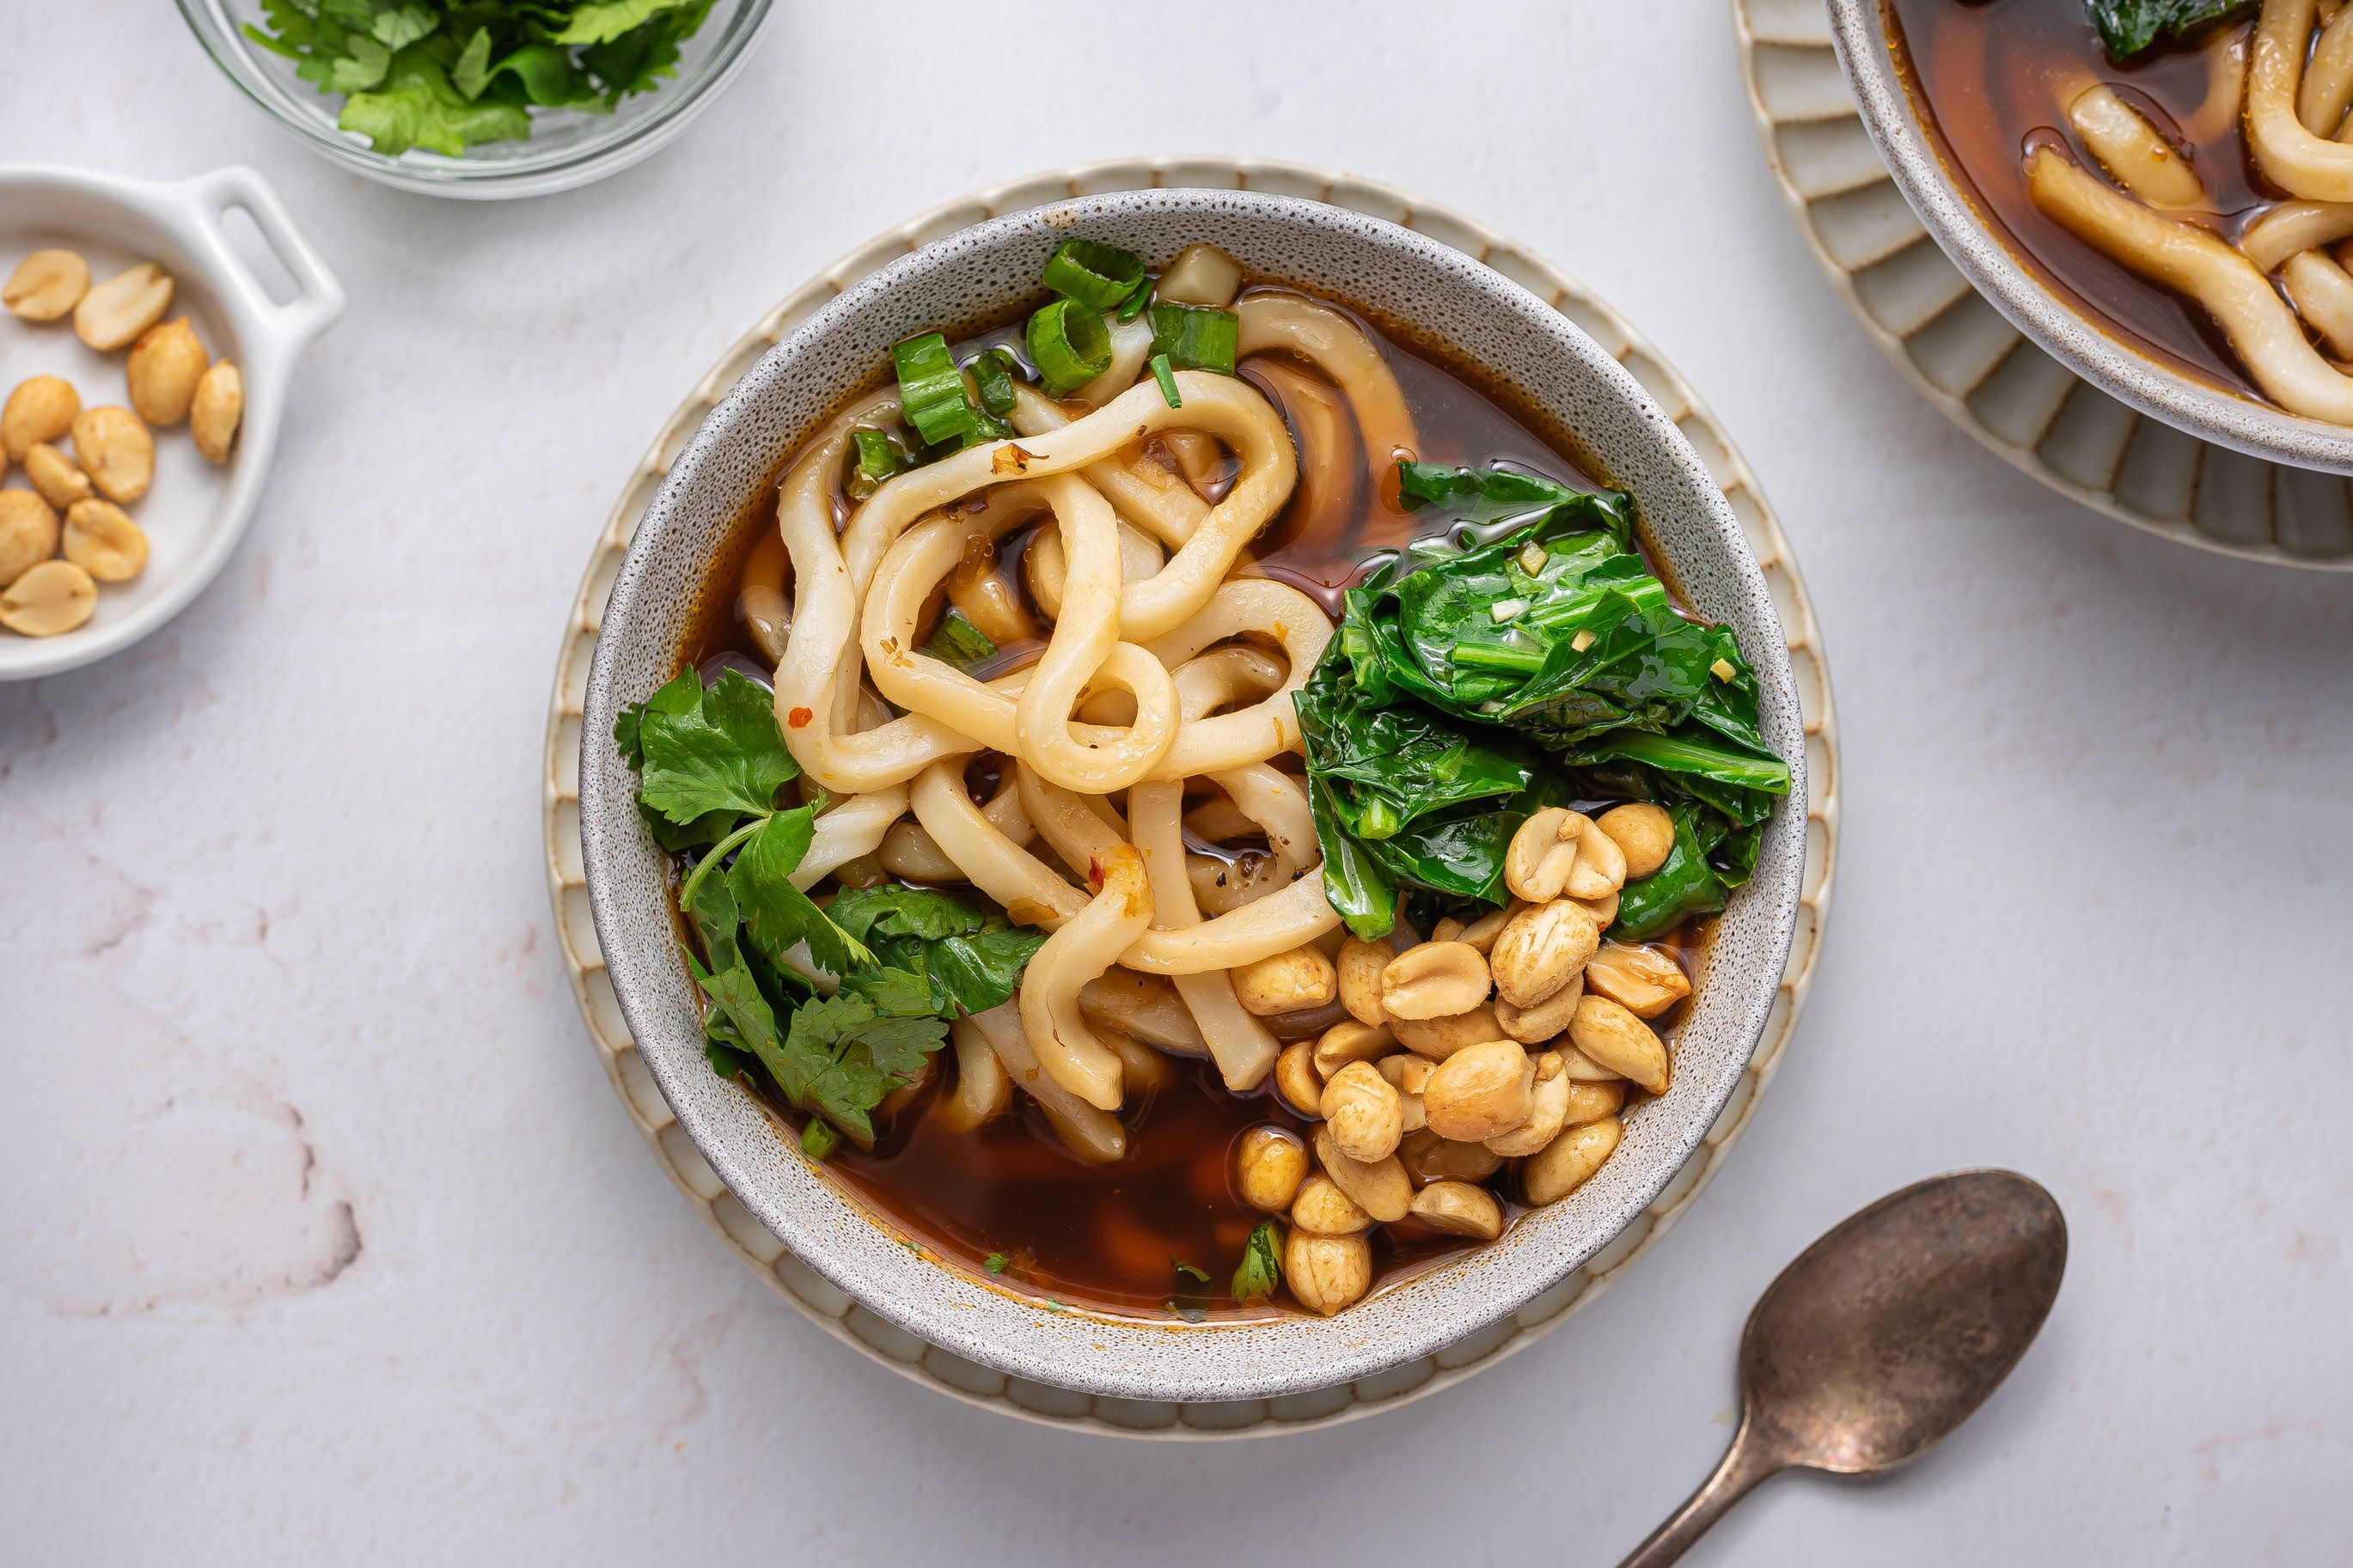 Warm Up With These Vegan Soup Recipes